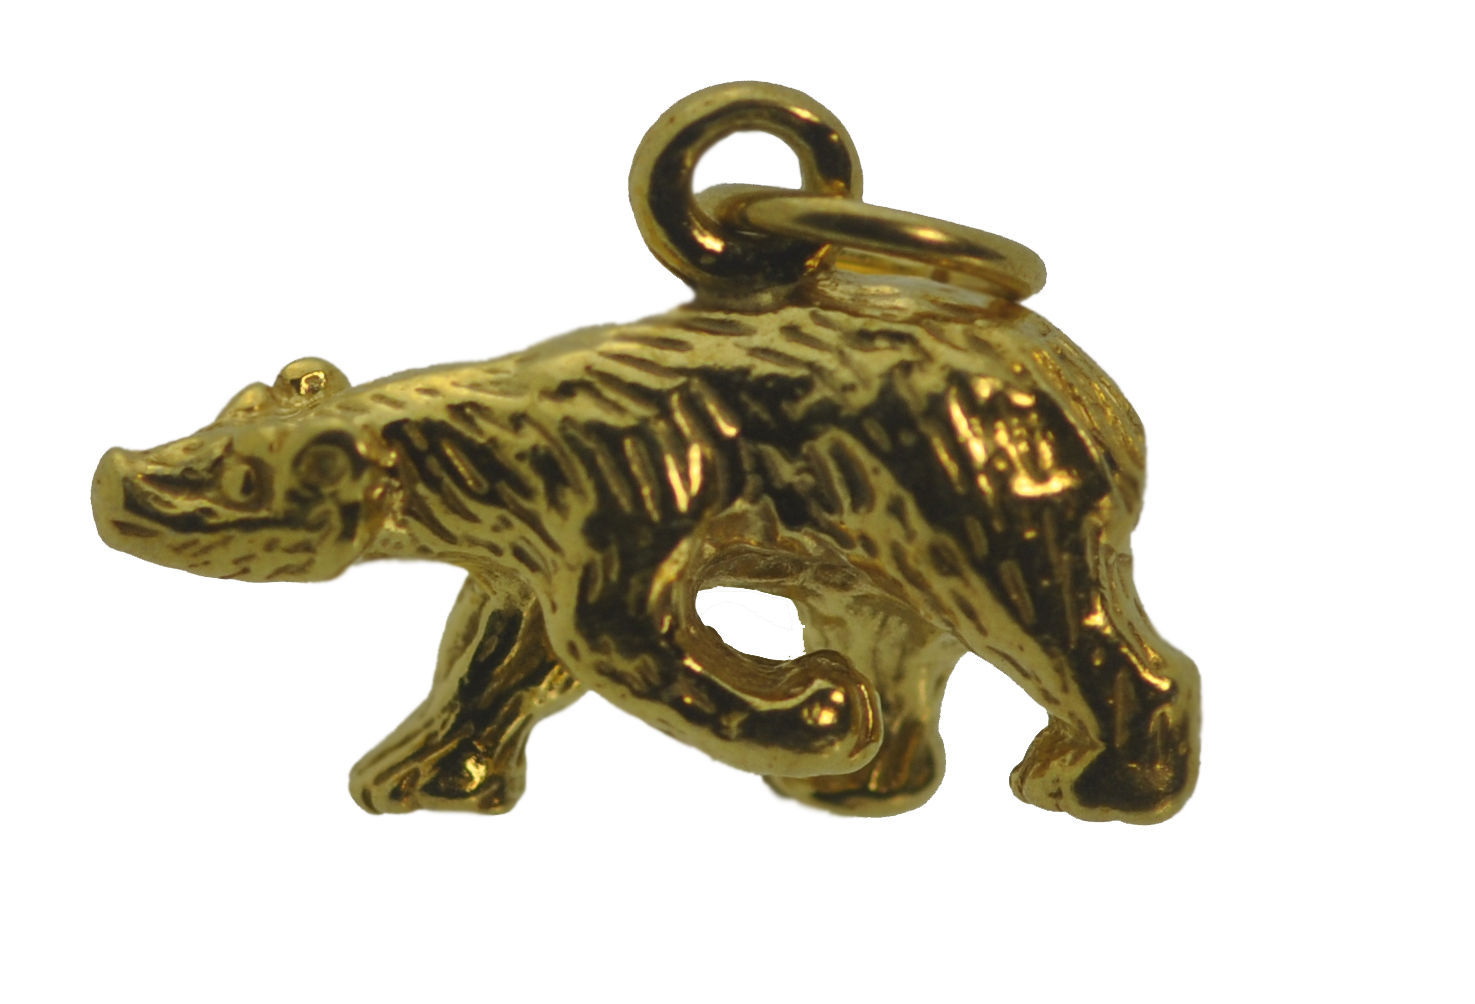 NICE Detailed 3D 24kt Gold plated solid Sterling Silver Grizzly mountain Bear Ch